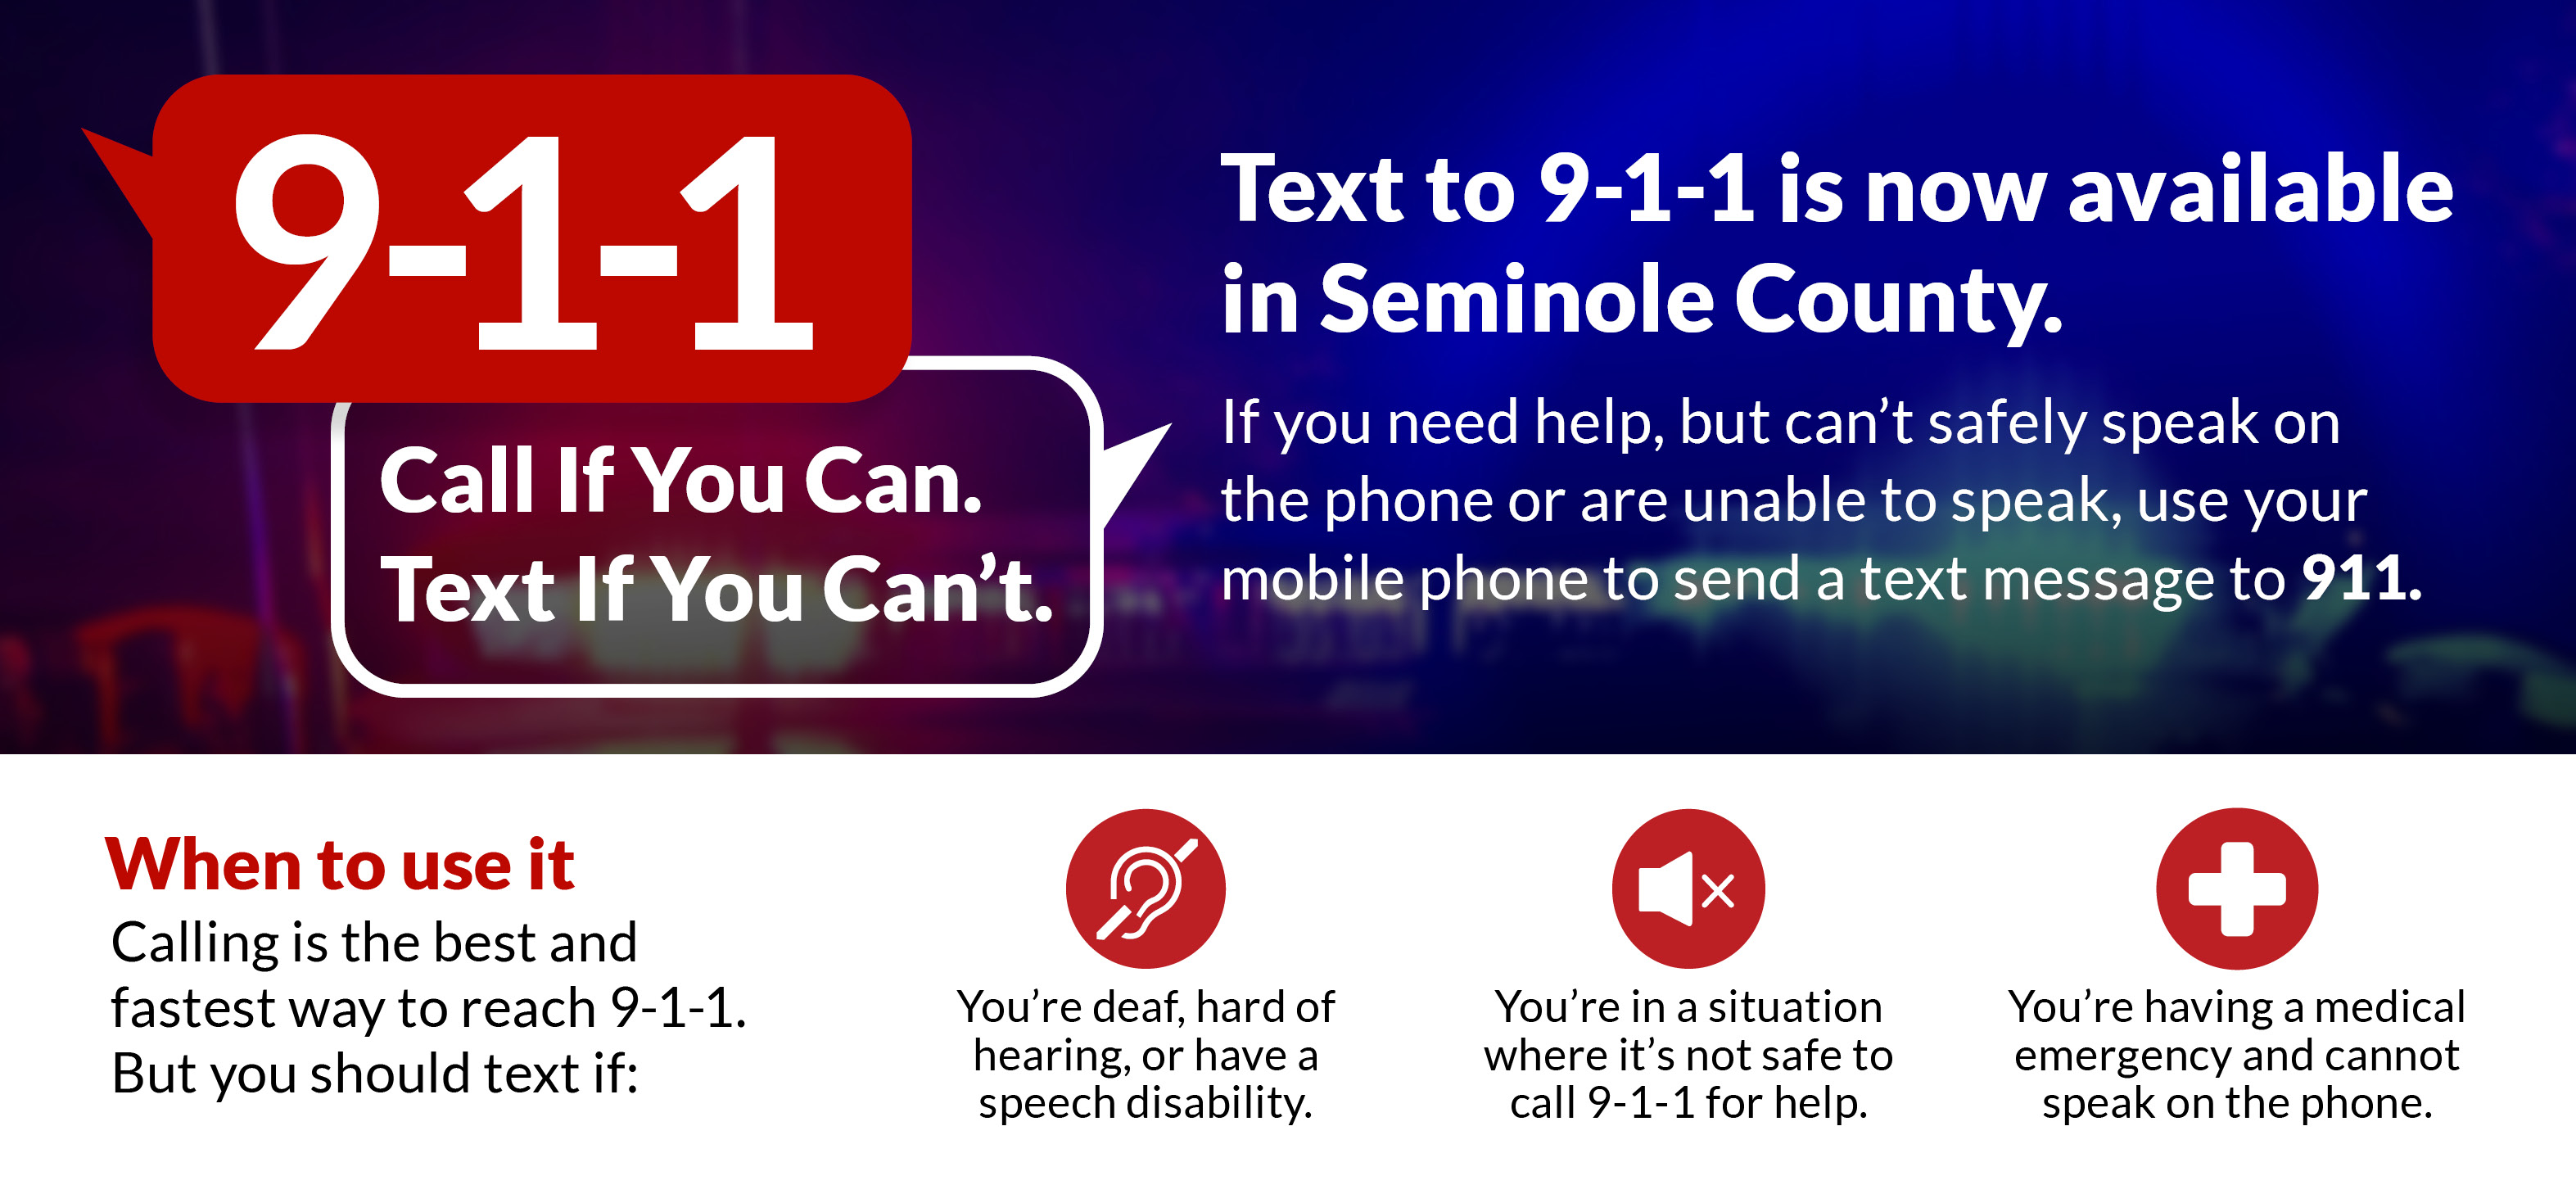 Text-to-911 graphic: Call if you can. Text if you can't.